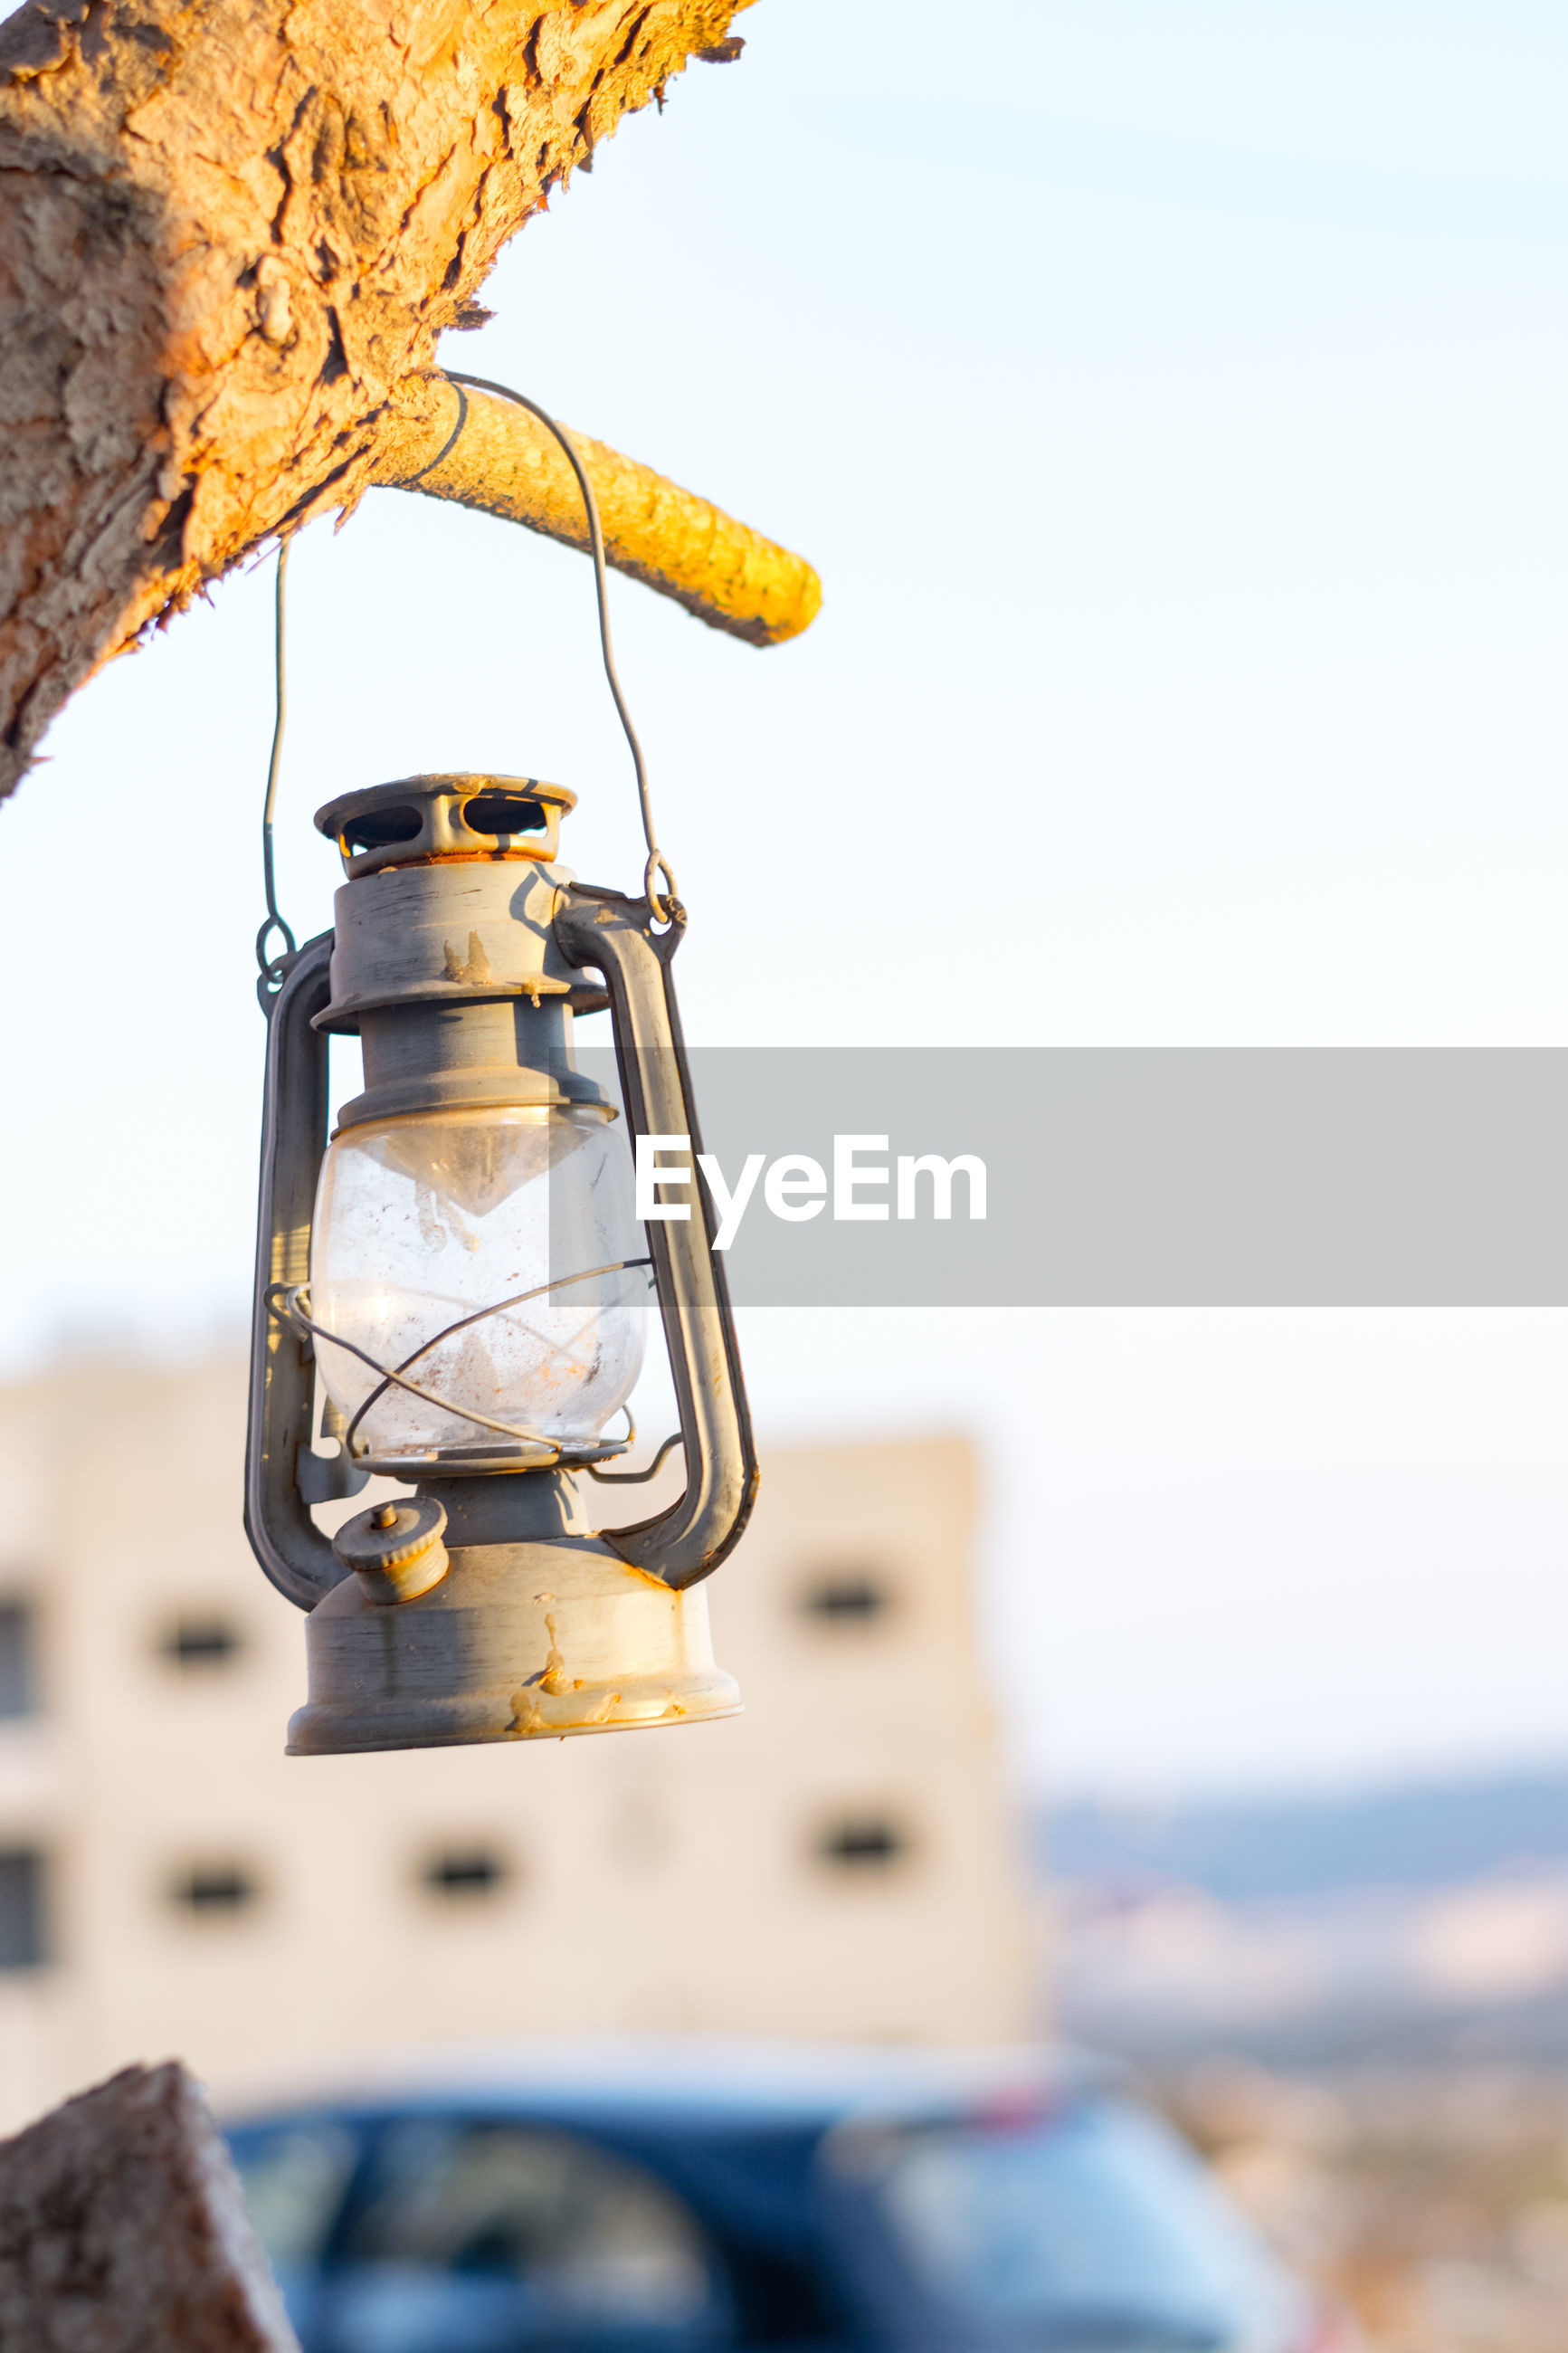 Old-fashioned lantern hanging from tree